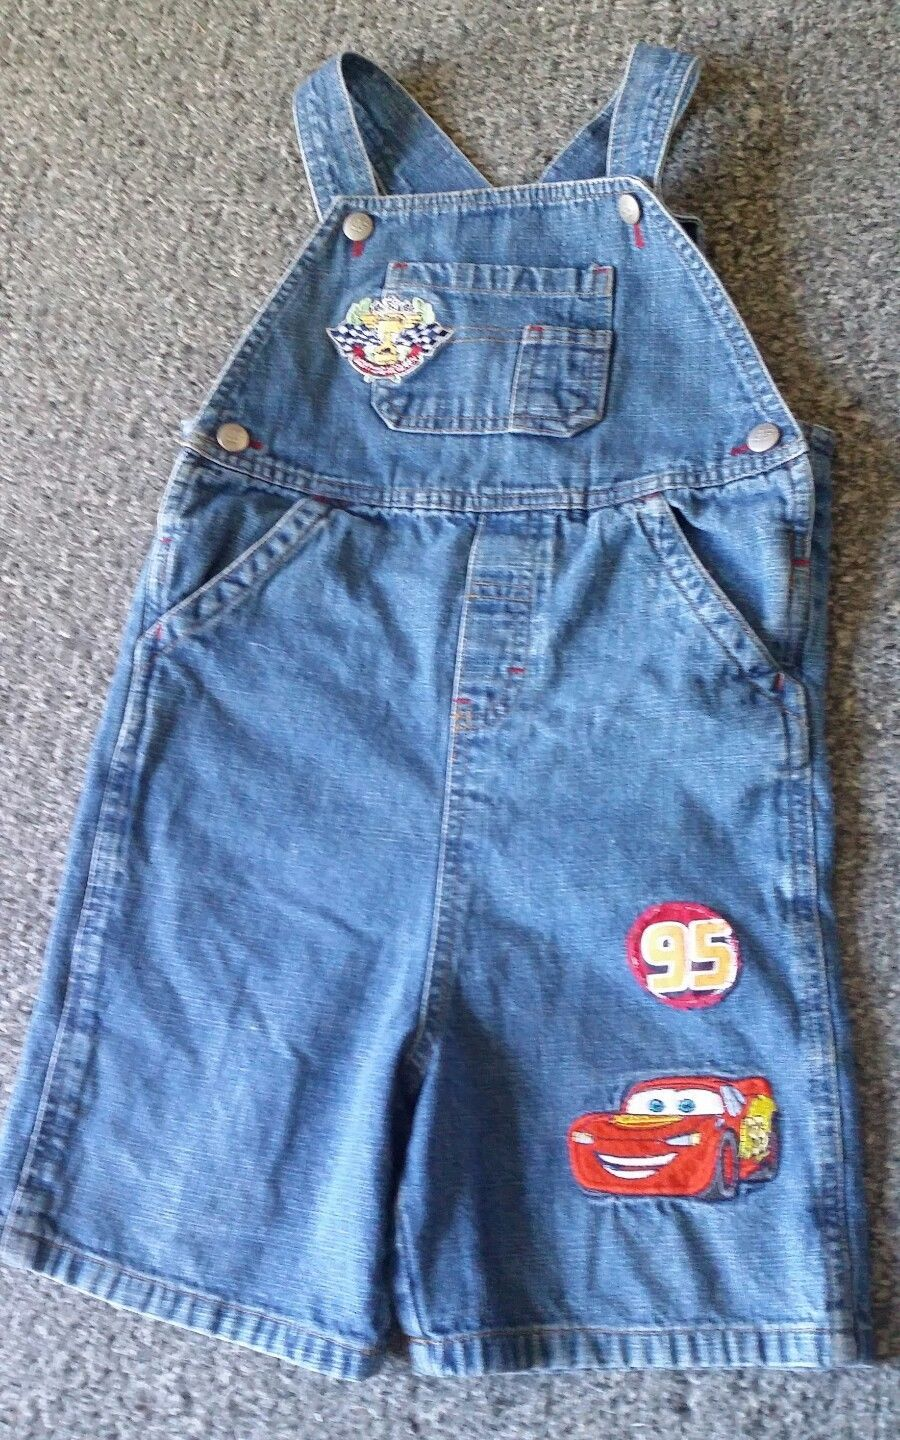 VTG Disney Pixar Cars 95 Lightening McQueen Denim Bibs Shorts 5T Overalls HTF